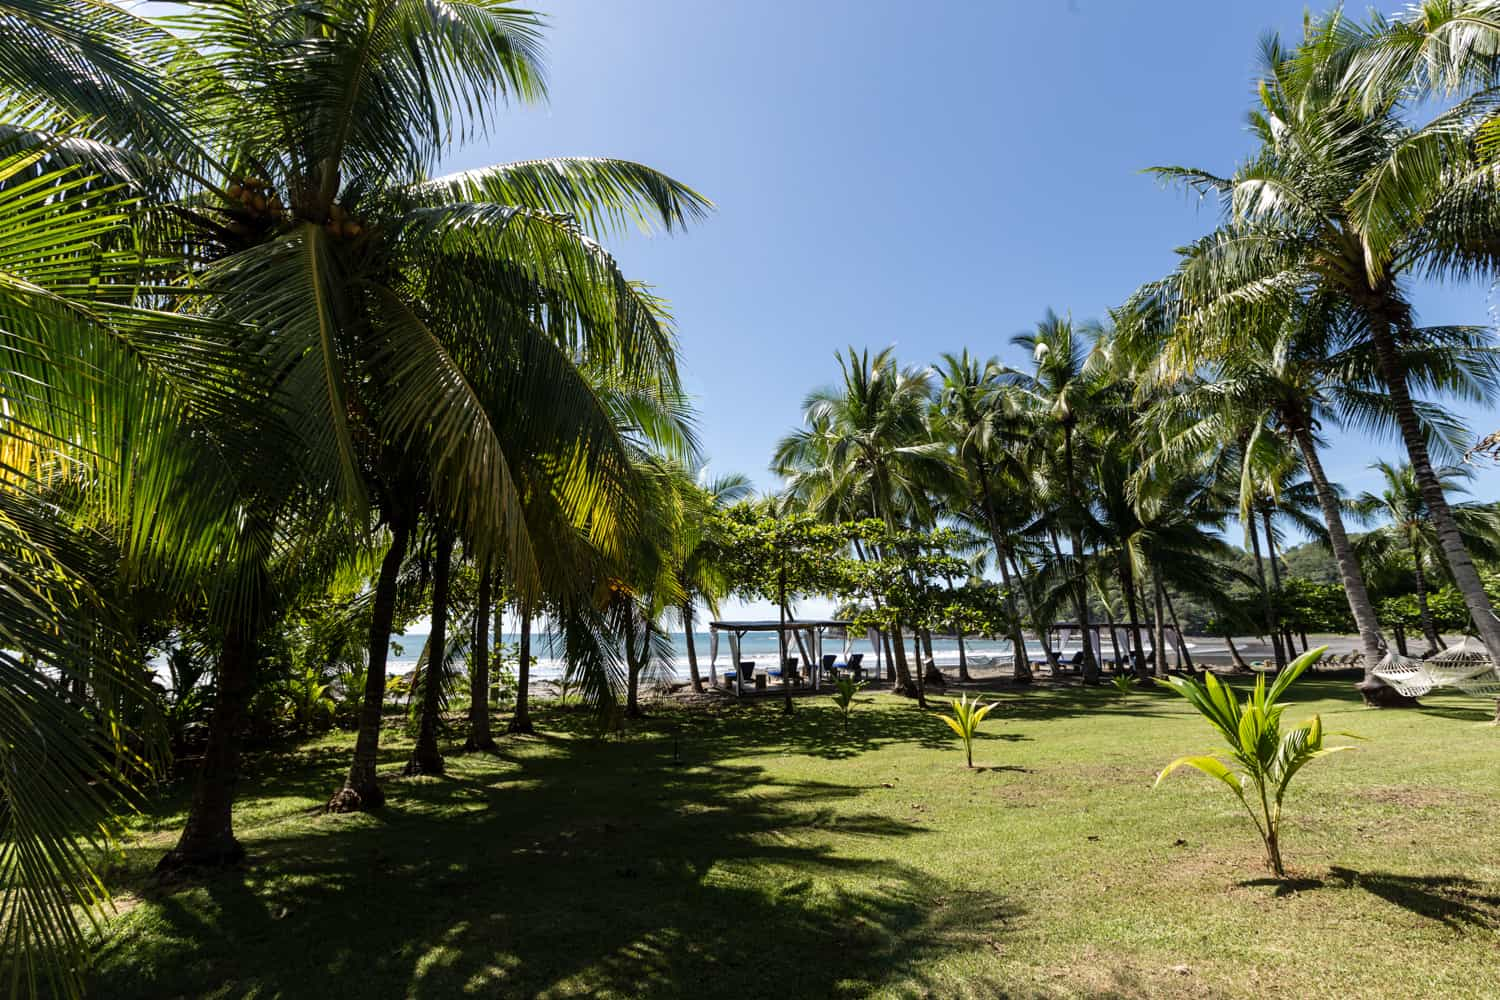 Palm trees decorate lawn for wedding ceremonies by beach.